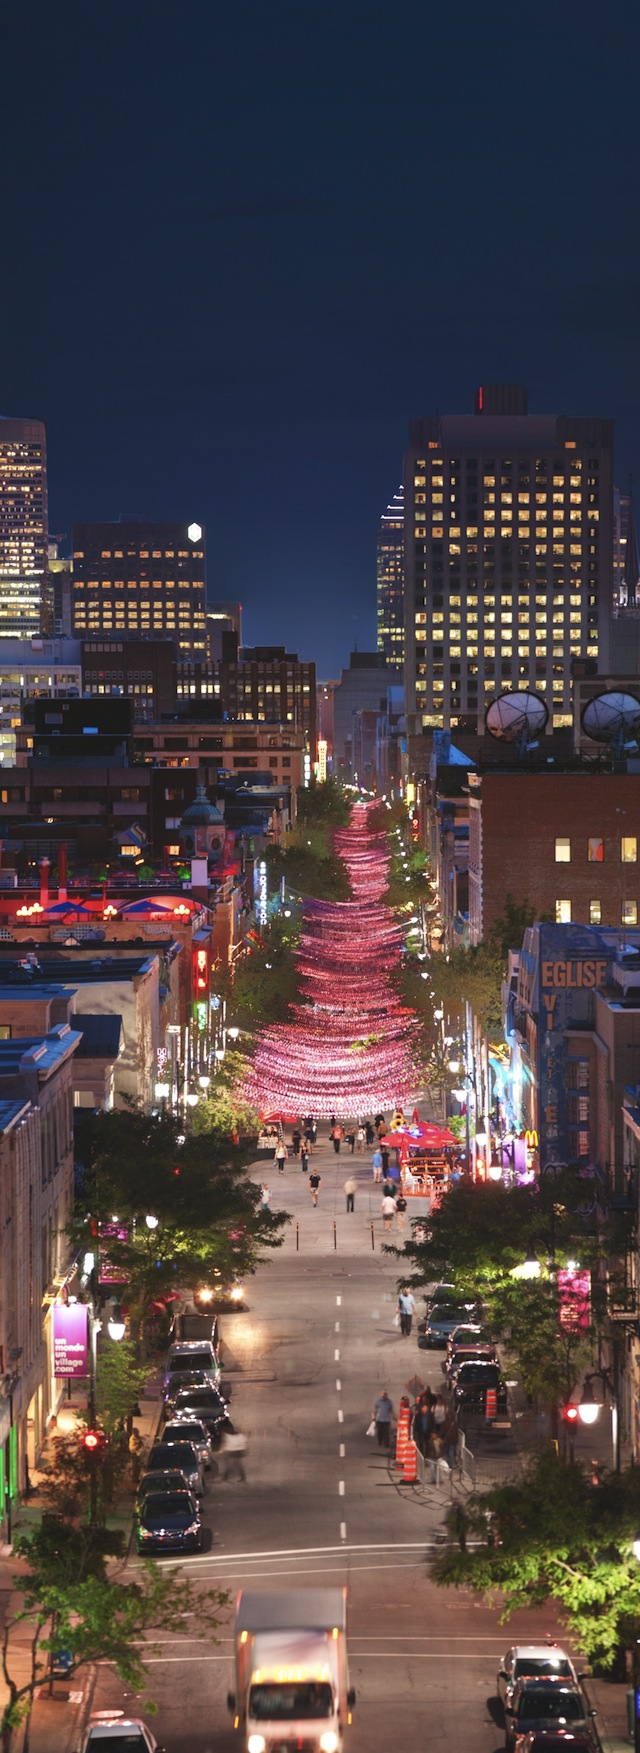 Suspended-Pink-Ball-Ribbon-Installment-Over-St.-Catherine-Street-In-Montreal-15